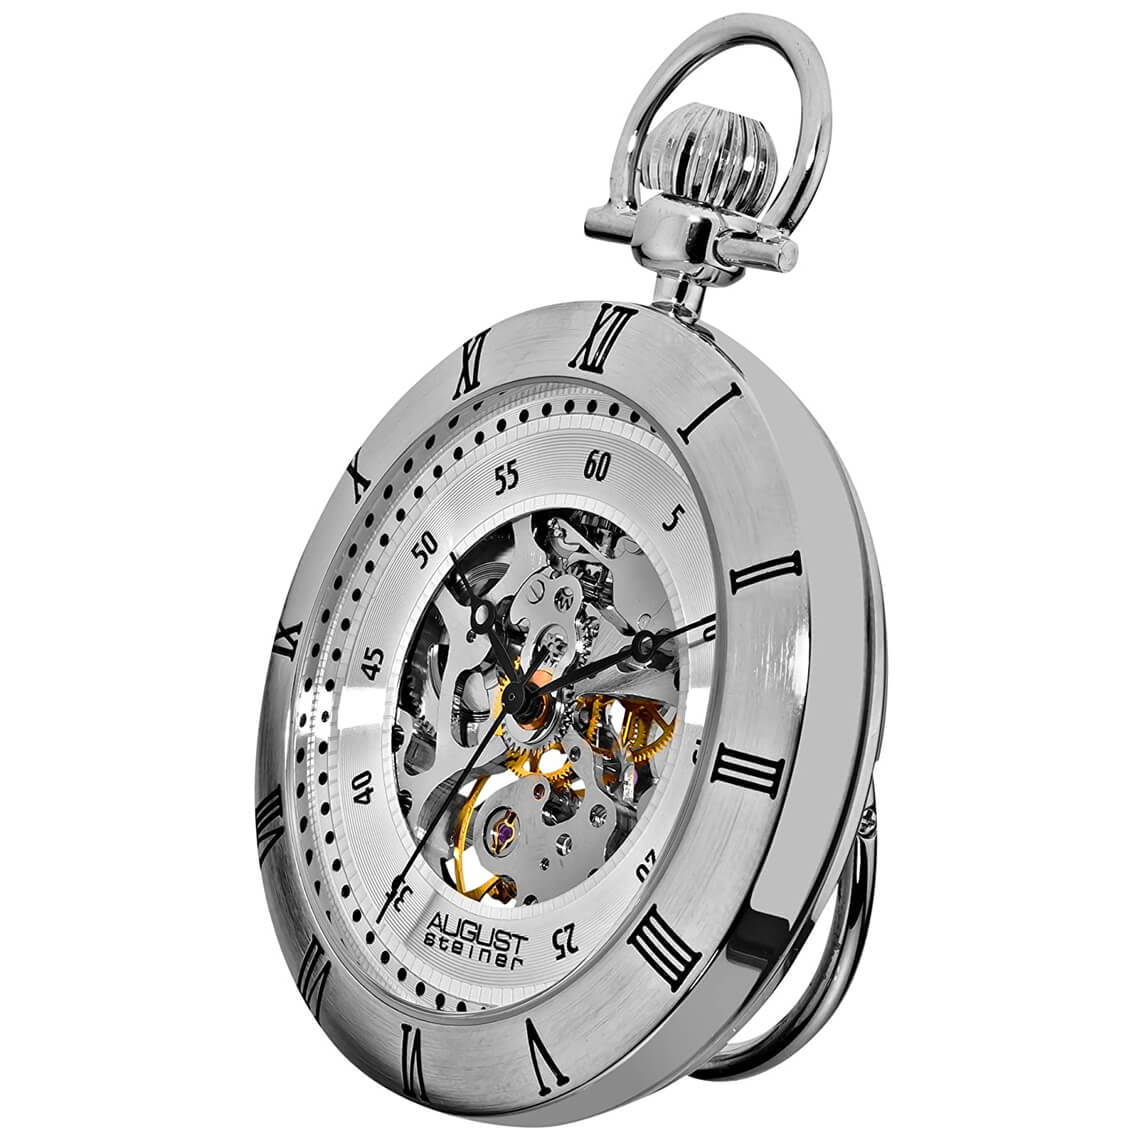 August Steiner Automatic Mechanical Pocket Watch